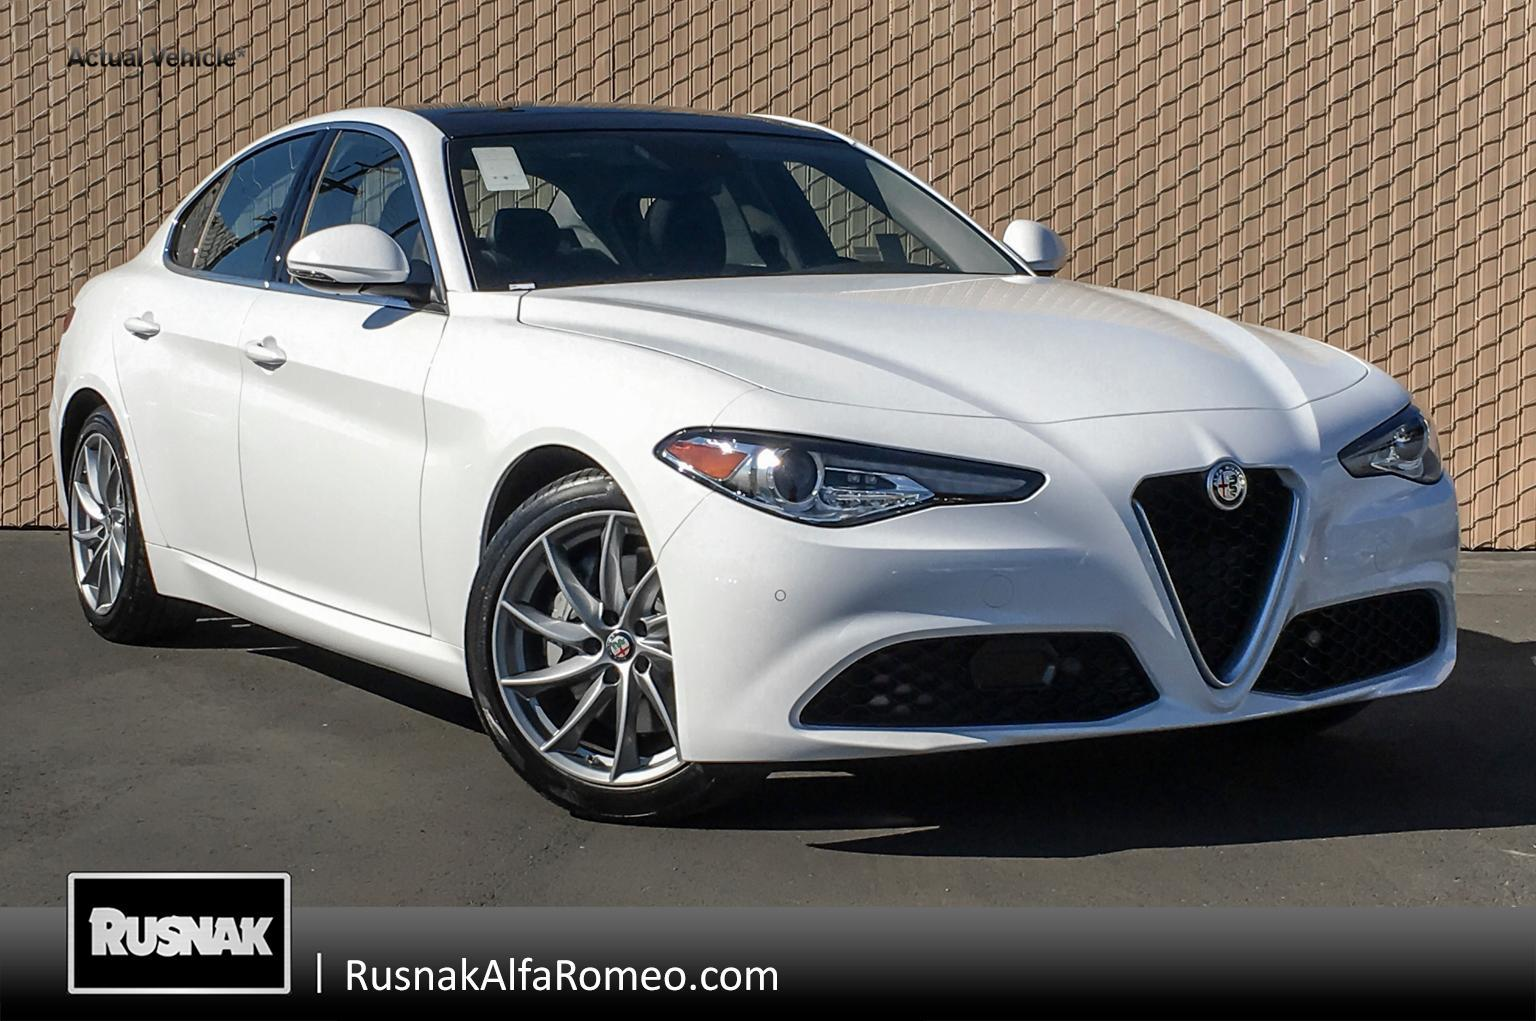 New 2019 Alfa Romeo Giulia Rwd Sedan In Pasadena 1019004 Rusnak